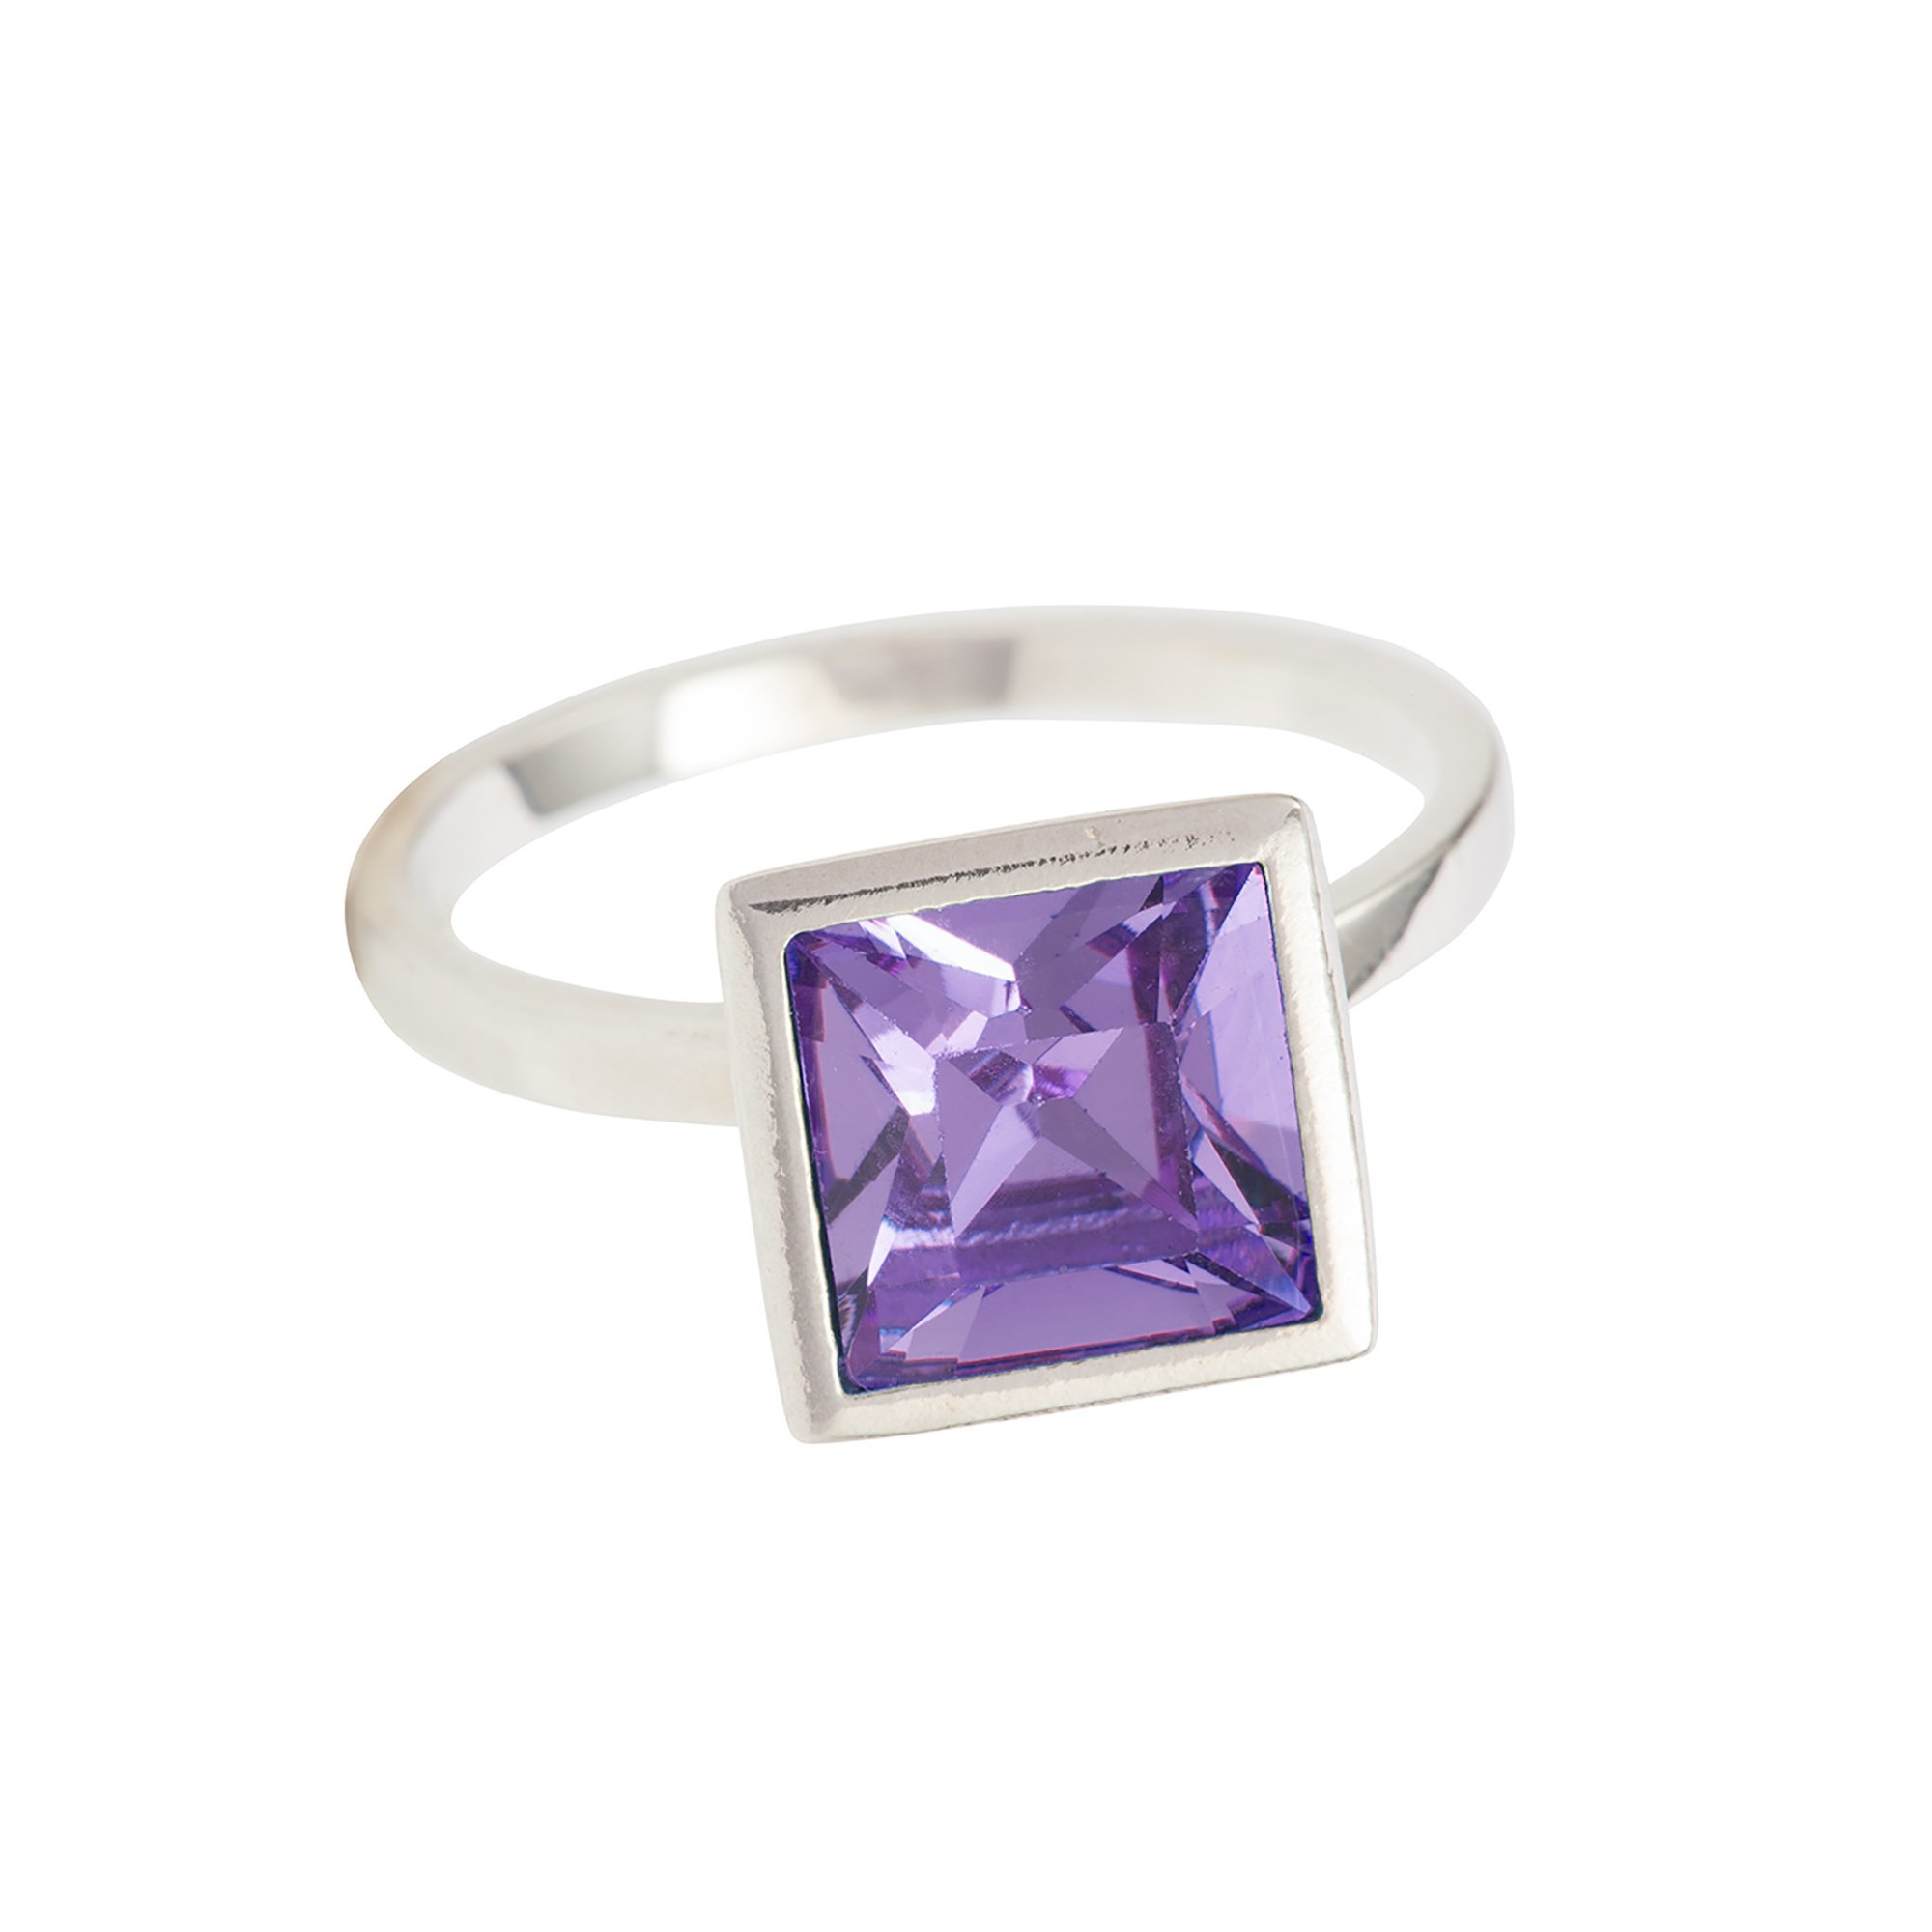 SUSAN CAPLAN CONTEMPORARY STERLING SILVER OZERA RING WITH TANZANITE SWAROVSKI CRYSTAL